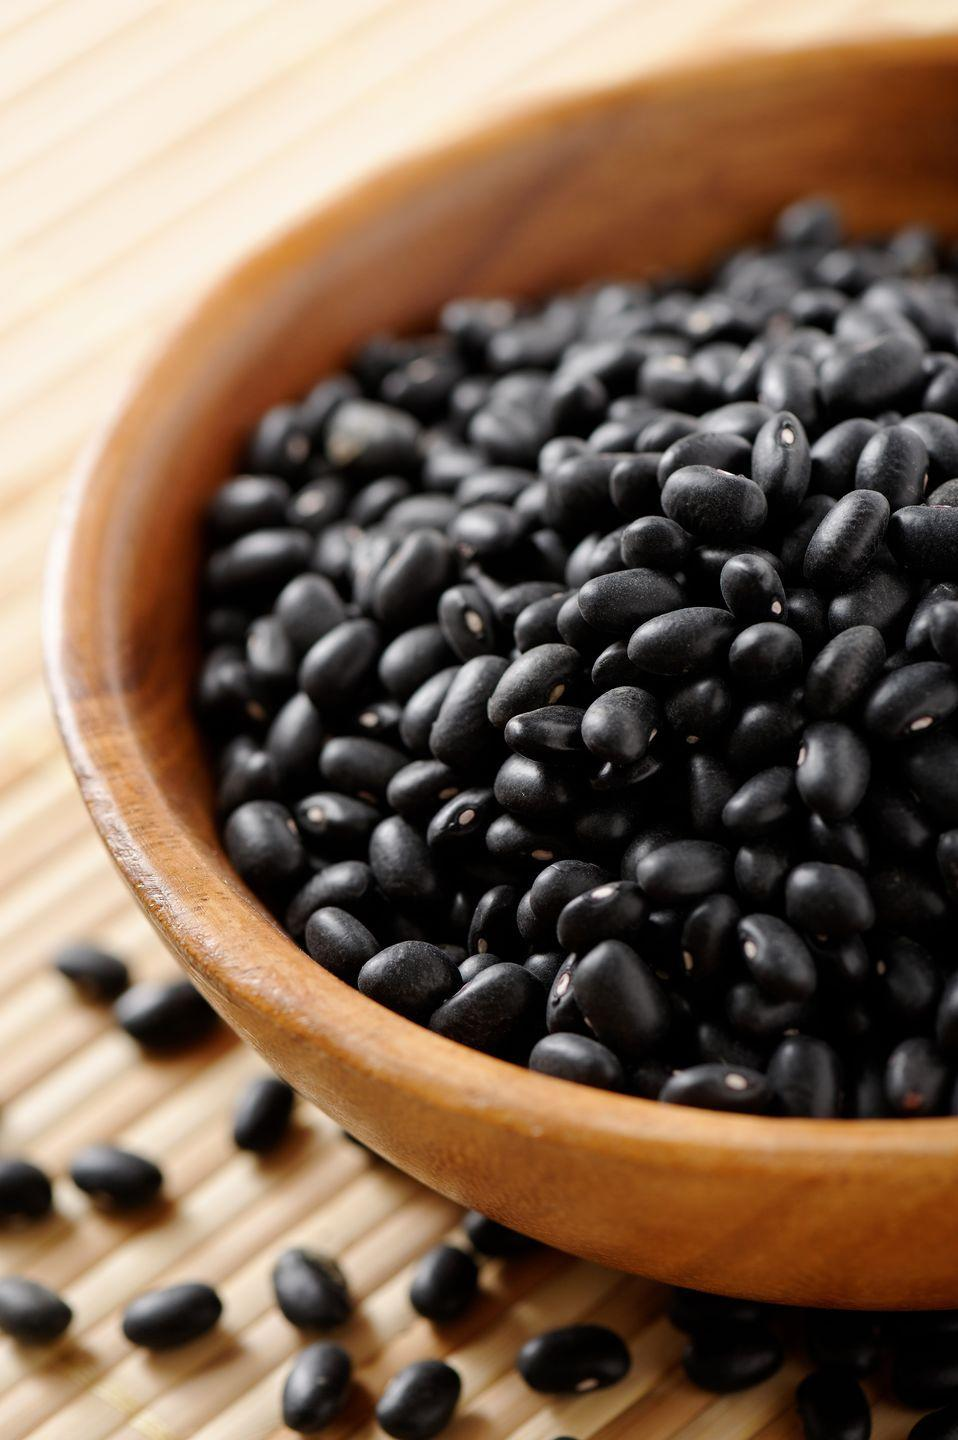 "<p><a href=""https://www.goodhousekeeping.com/health/diet-nutrition/a20088526/black-beans-nutrition/"" rel=""nofollow noopener"" target=""_blank"" data-ylk=""slk:Black beans"" class=""link rapid-noclick-resp"">Black beans</a> are even more fiber-dense, with 8 grams in a half-cup, 100-calorie serving. You'll get plenty of filling plant-based protein too. </p>"